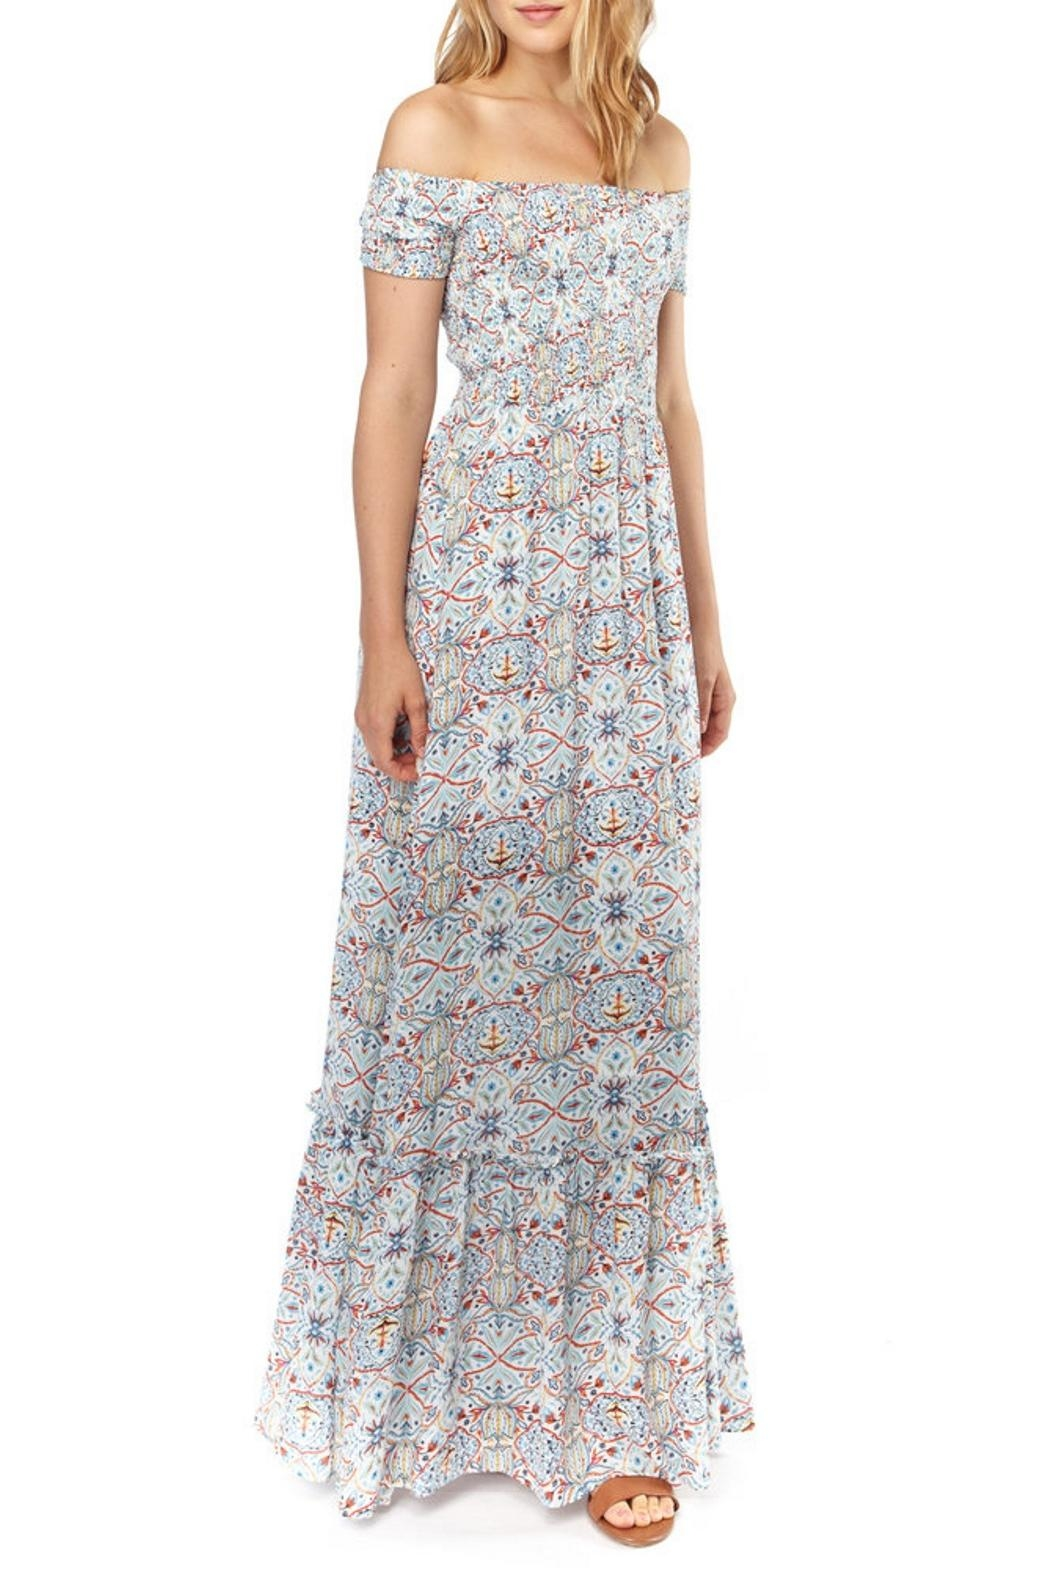 Cooper & Ella Senna Maxi Dress - Front Cropped Image